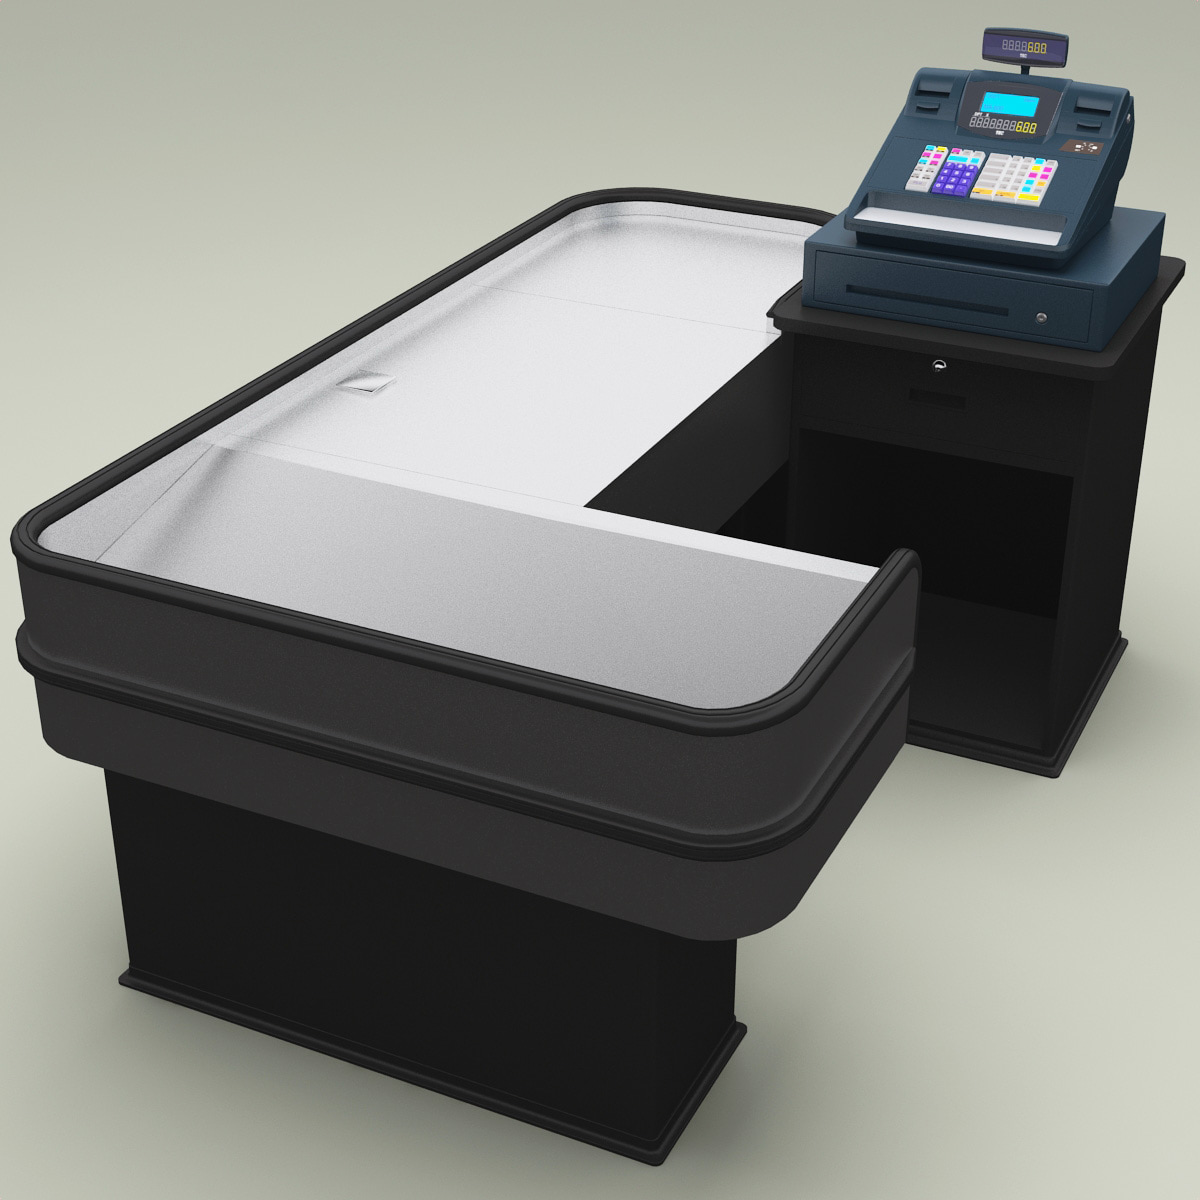 Cash_Counter_v10_001.jpg